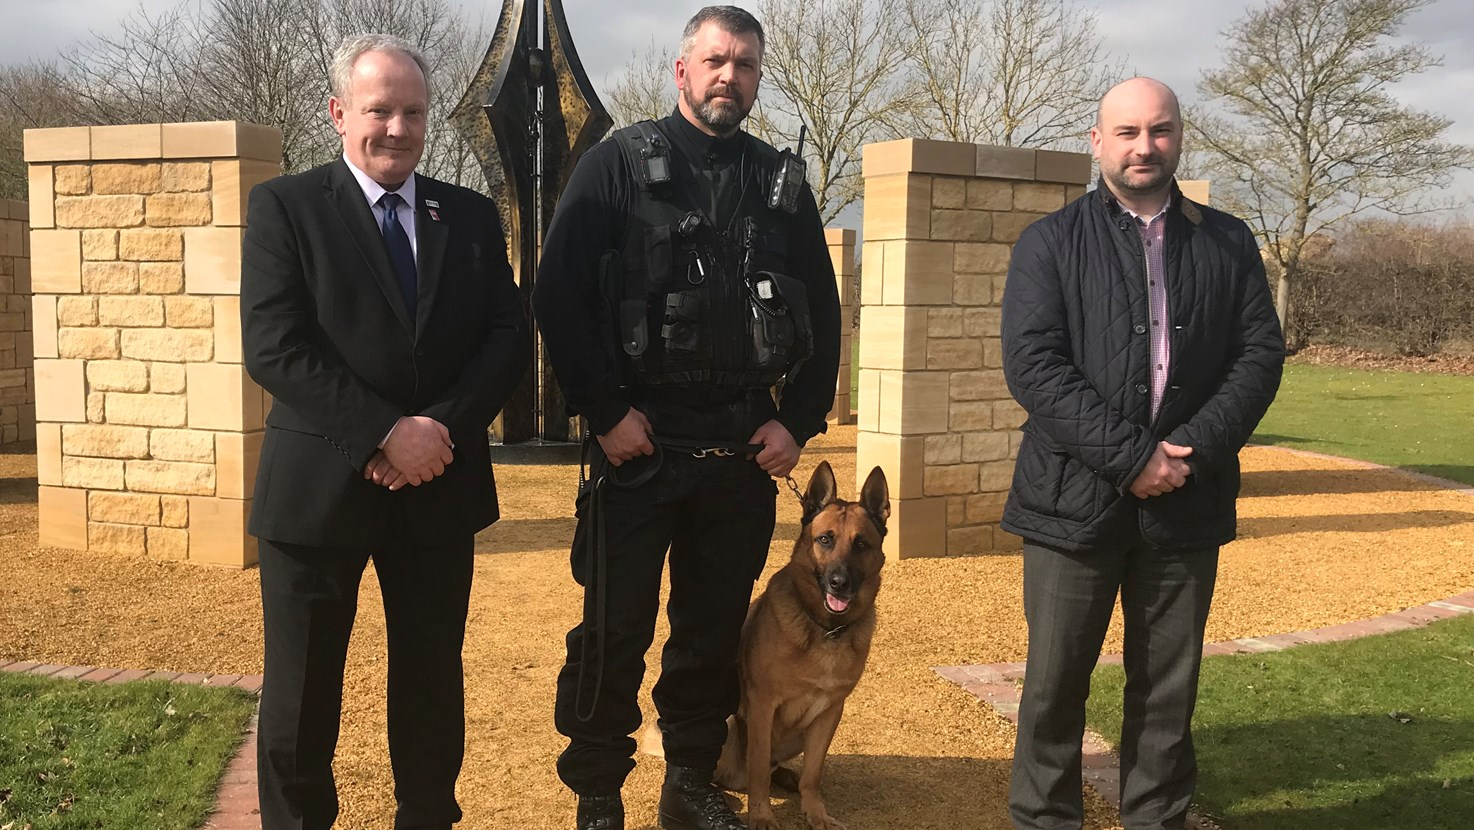 DPCC & PCC with Police dog and handler